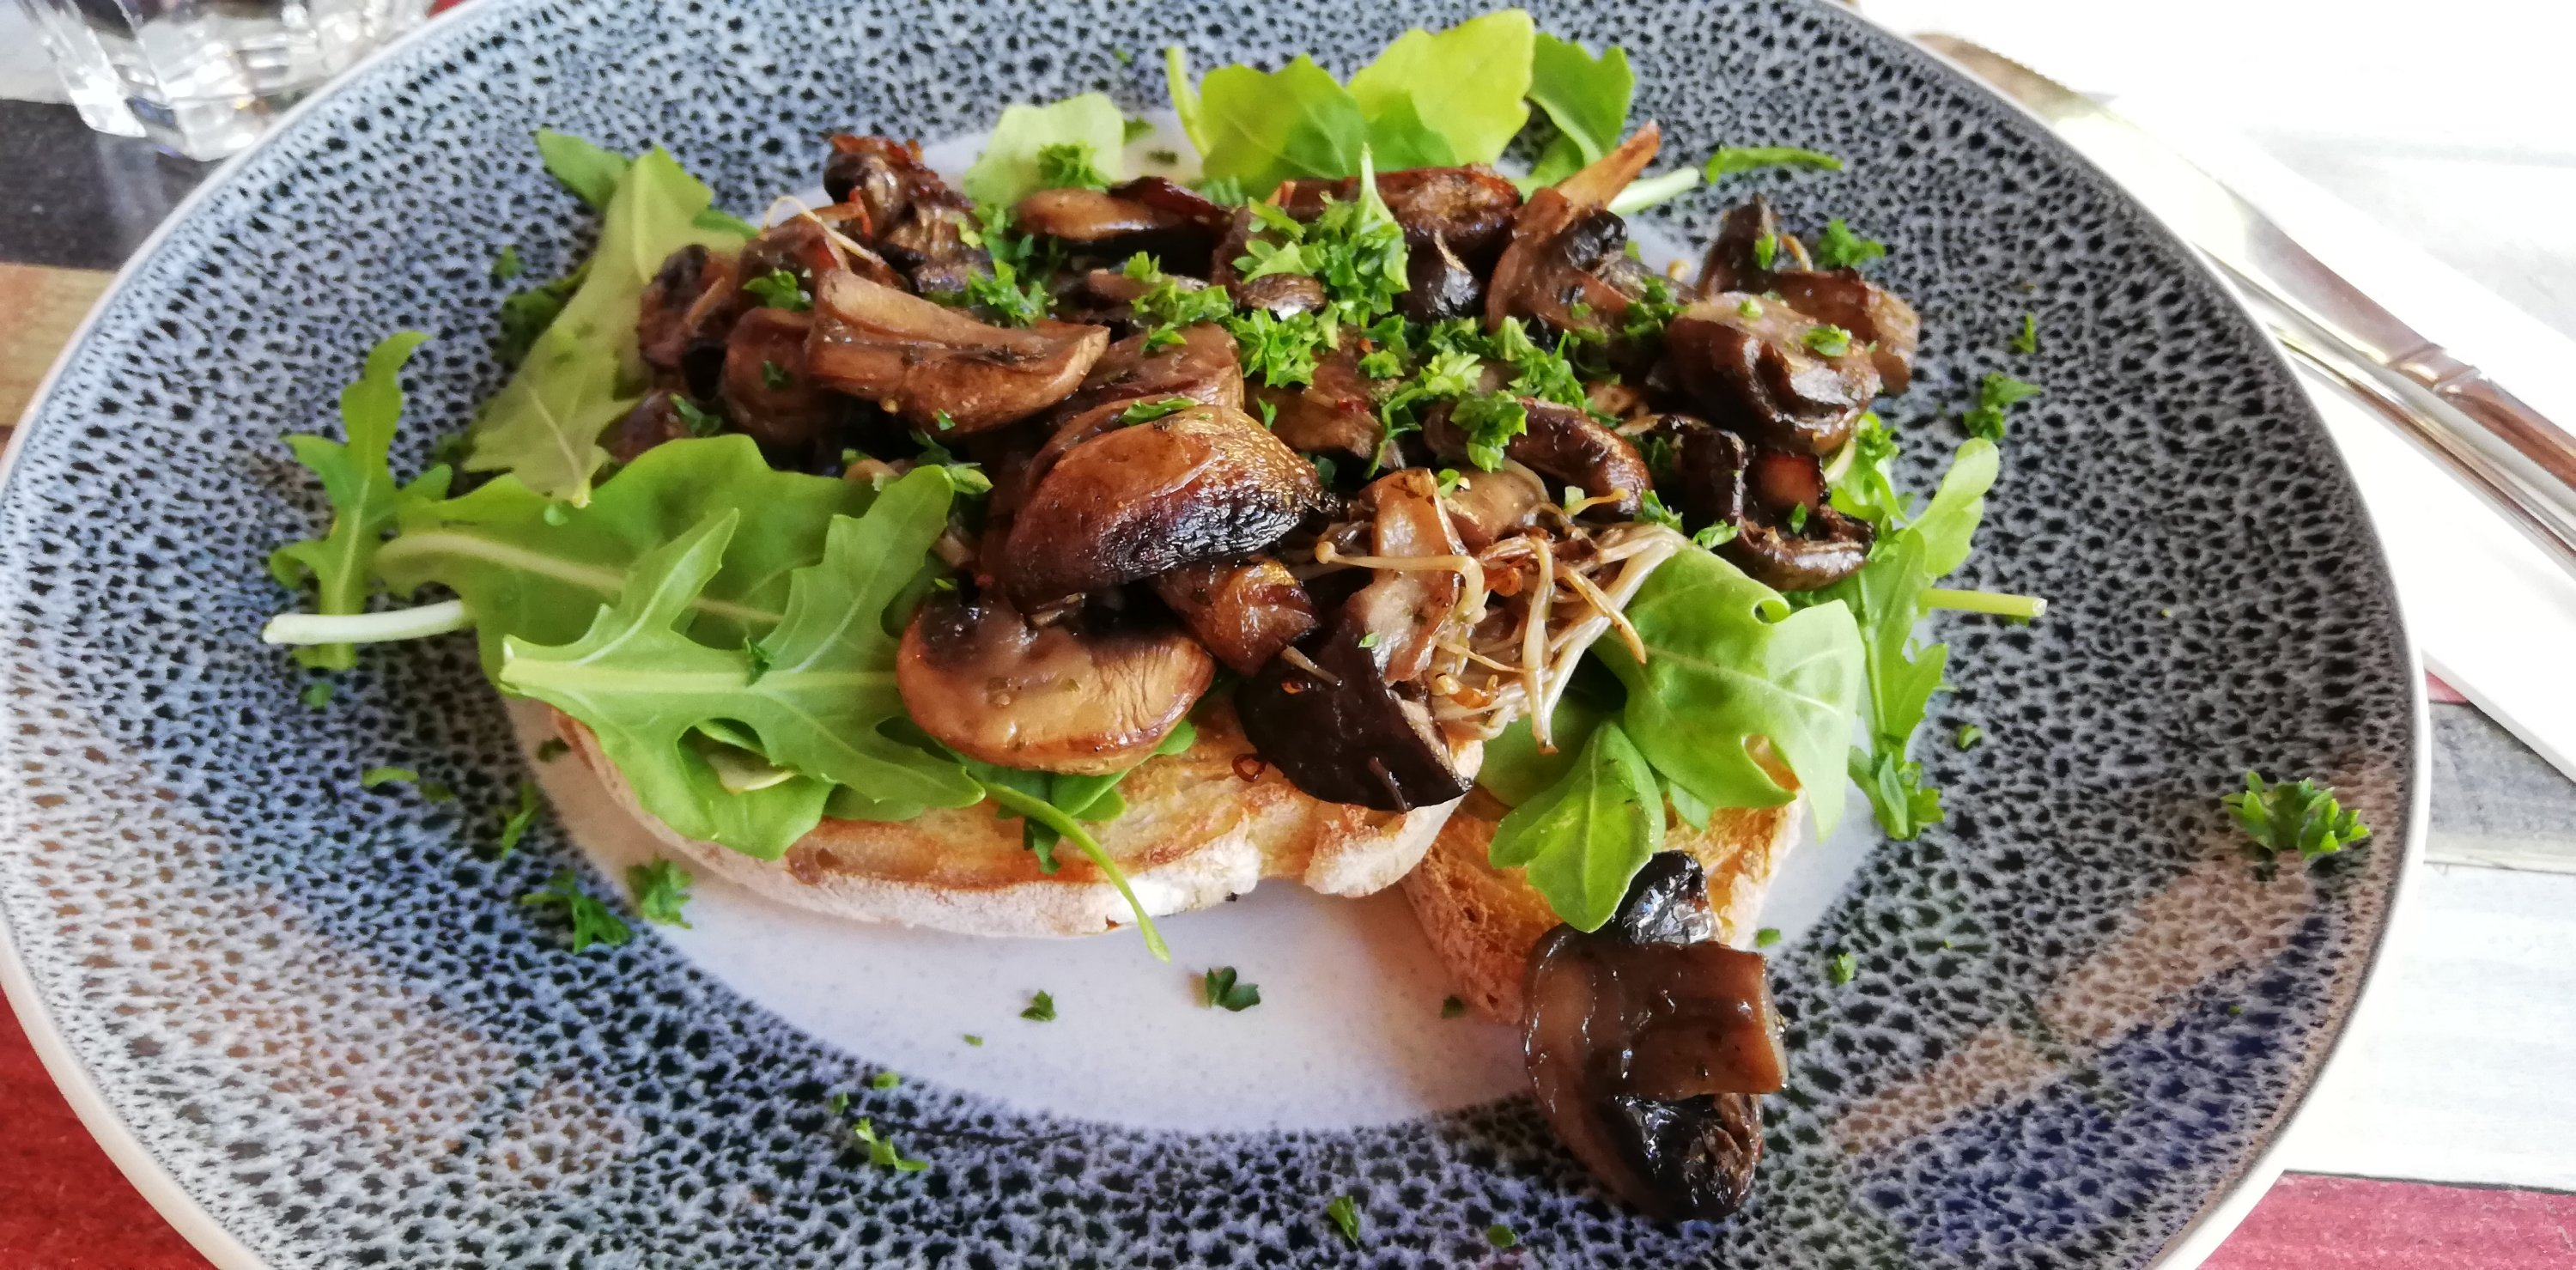 Hellenic Mushroom dish from the Ardross Street Cafe